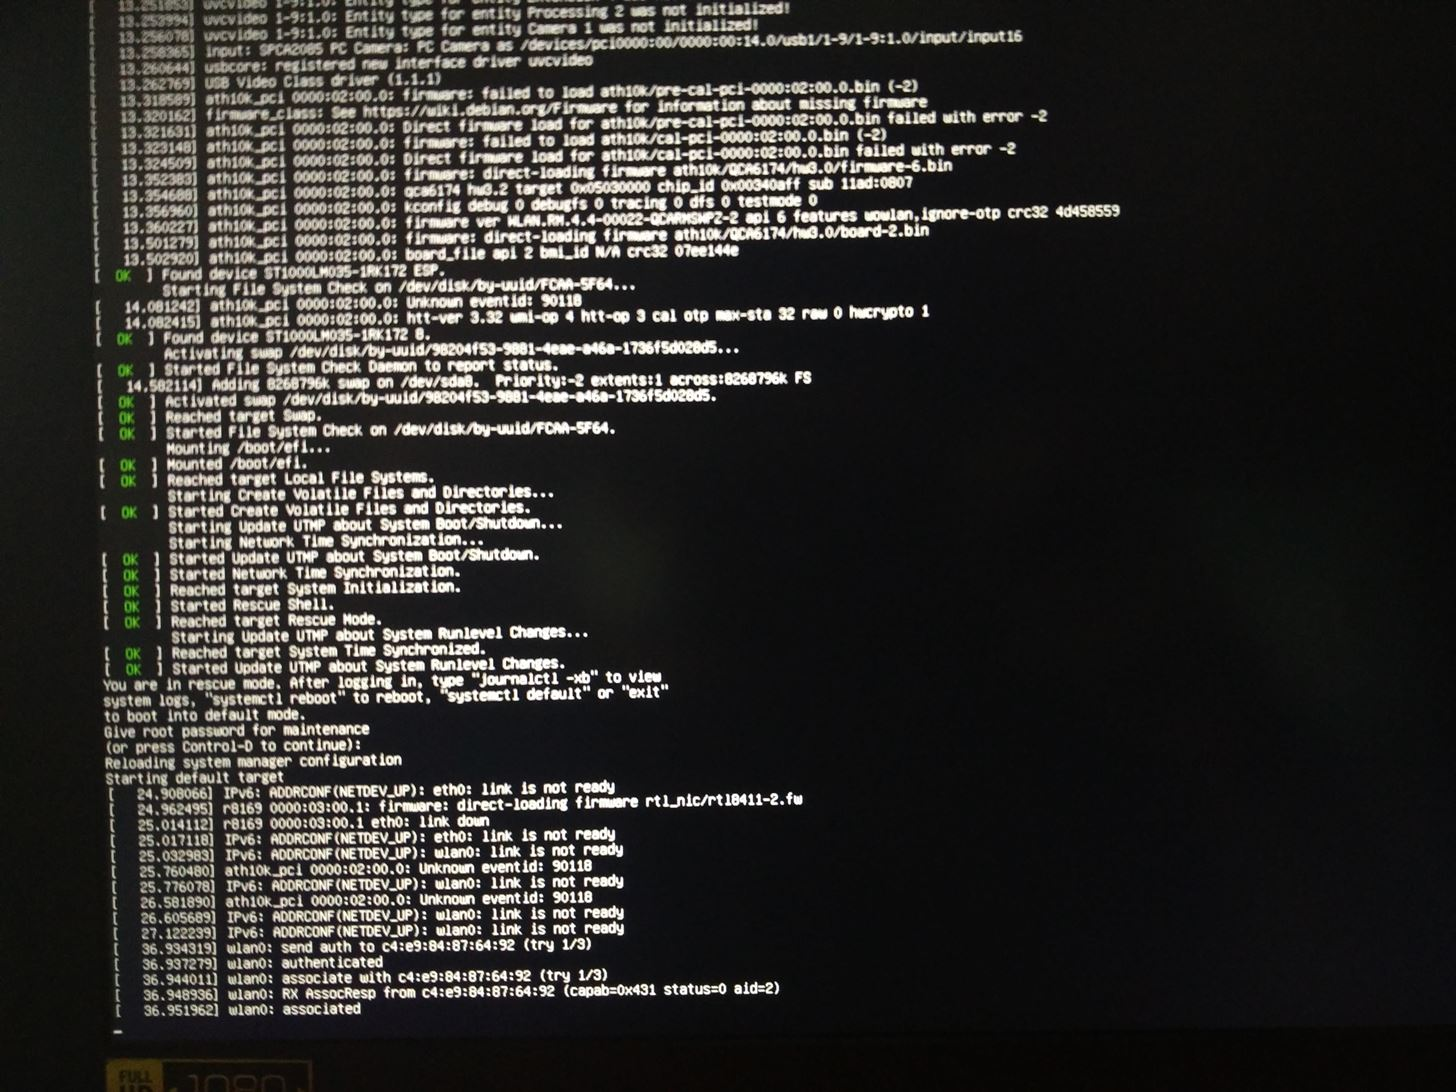 My Kali Linux Stuck in Boot After Update